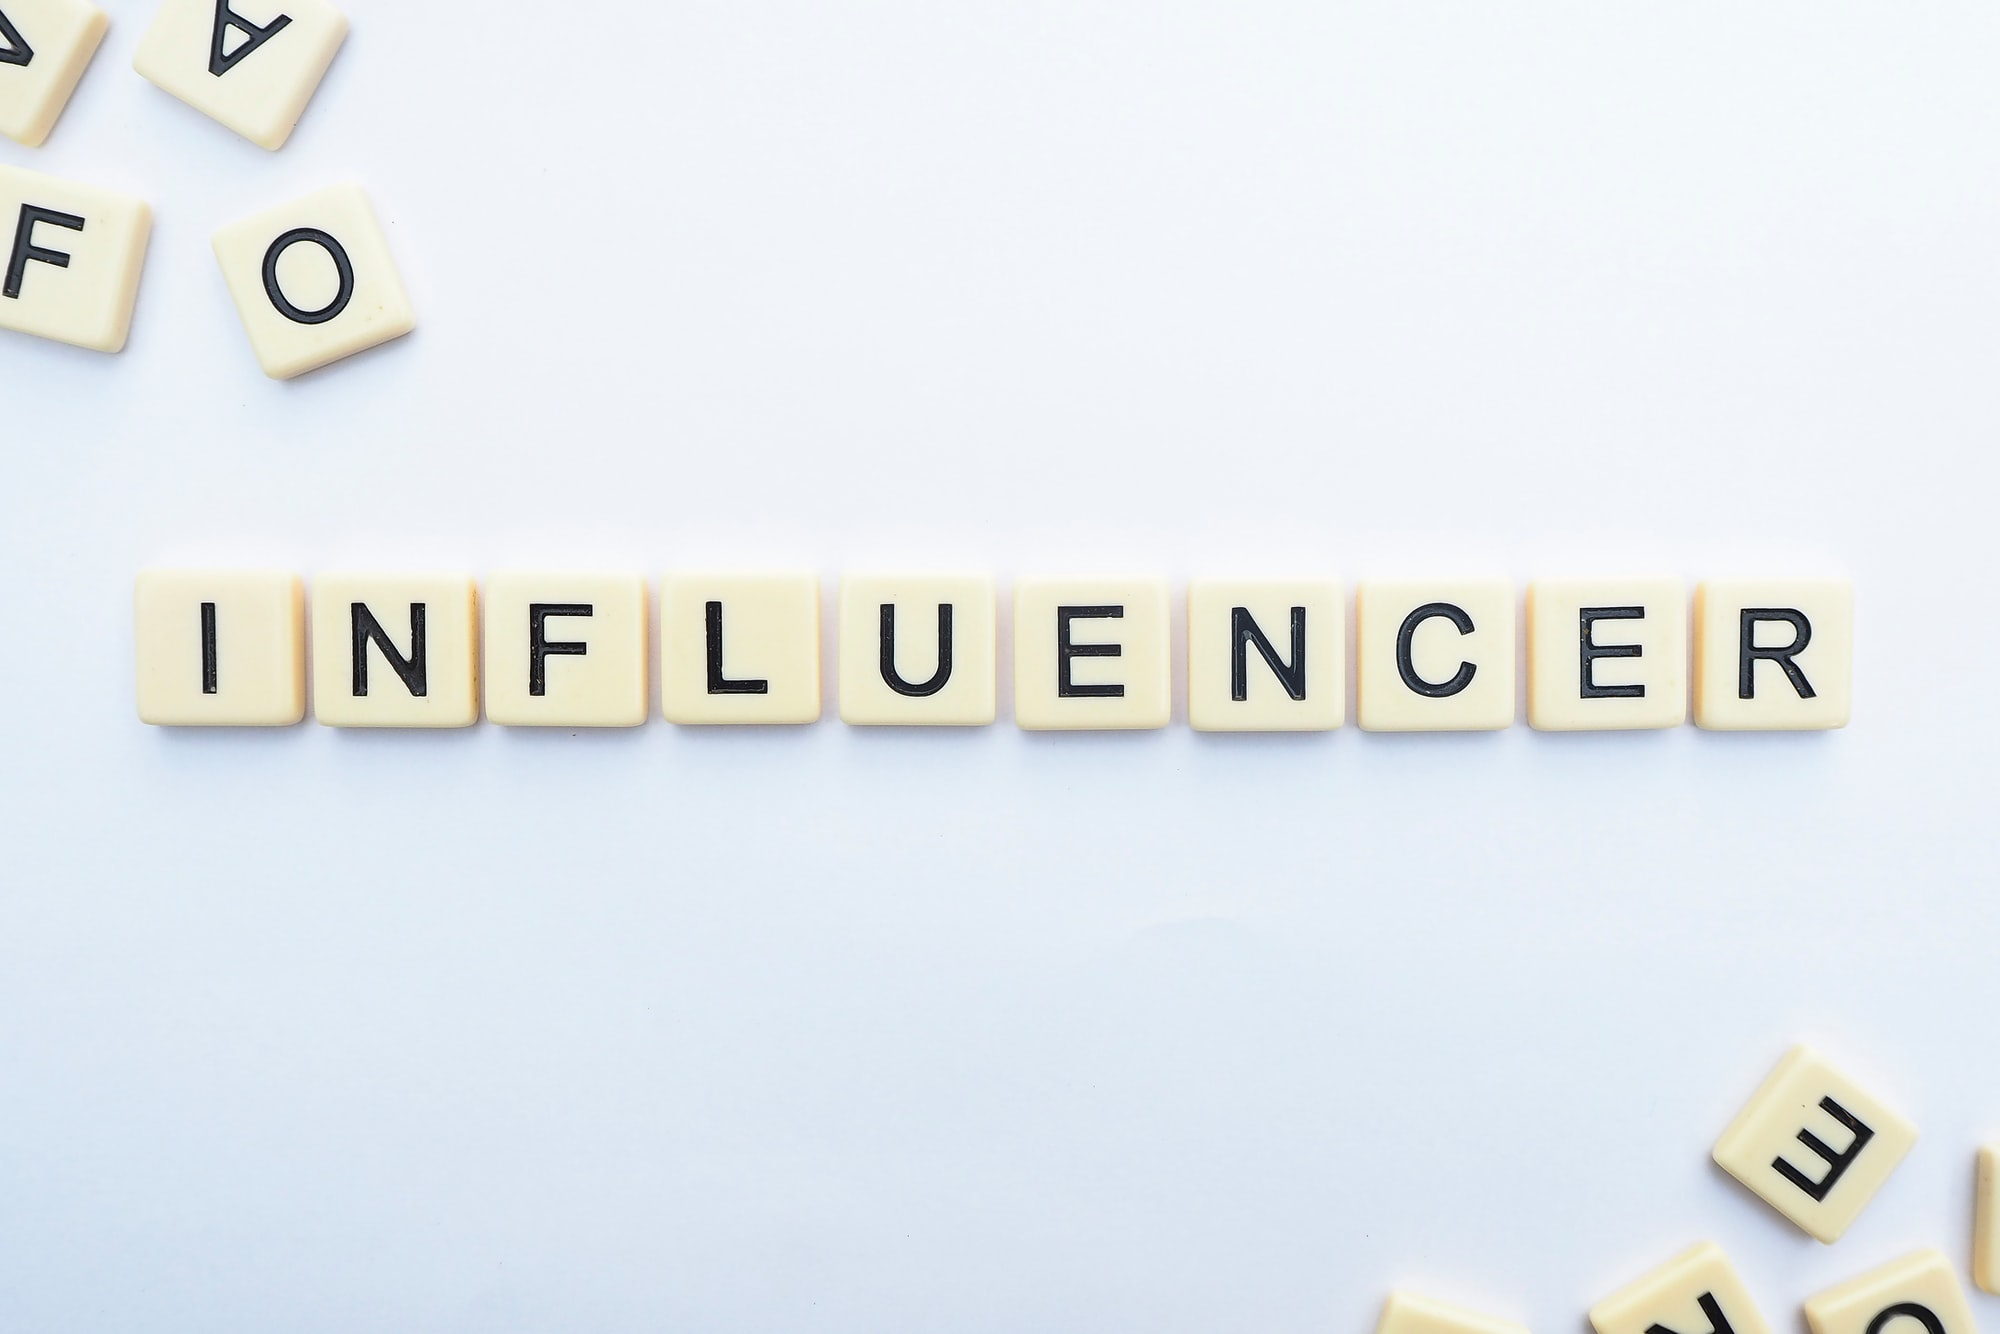 How to Check if an Influencer is Actually Influential